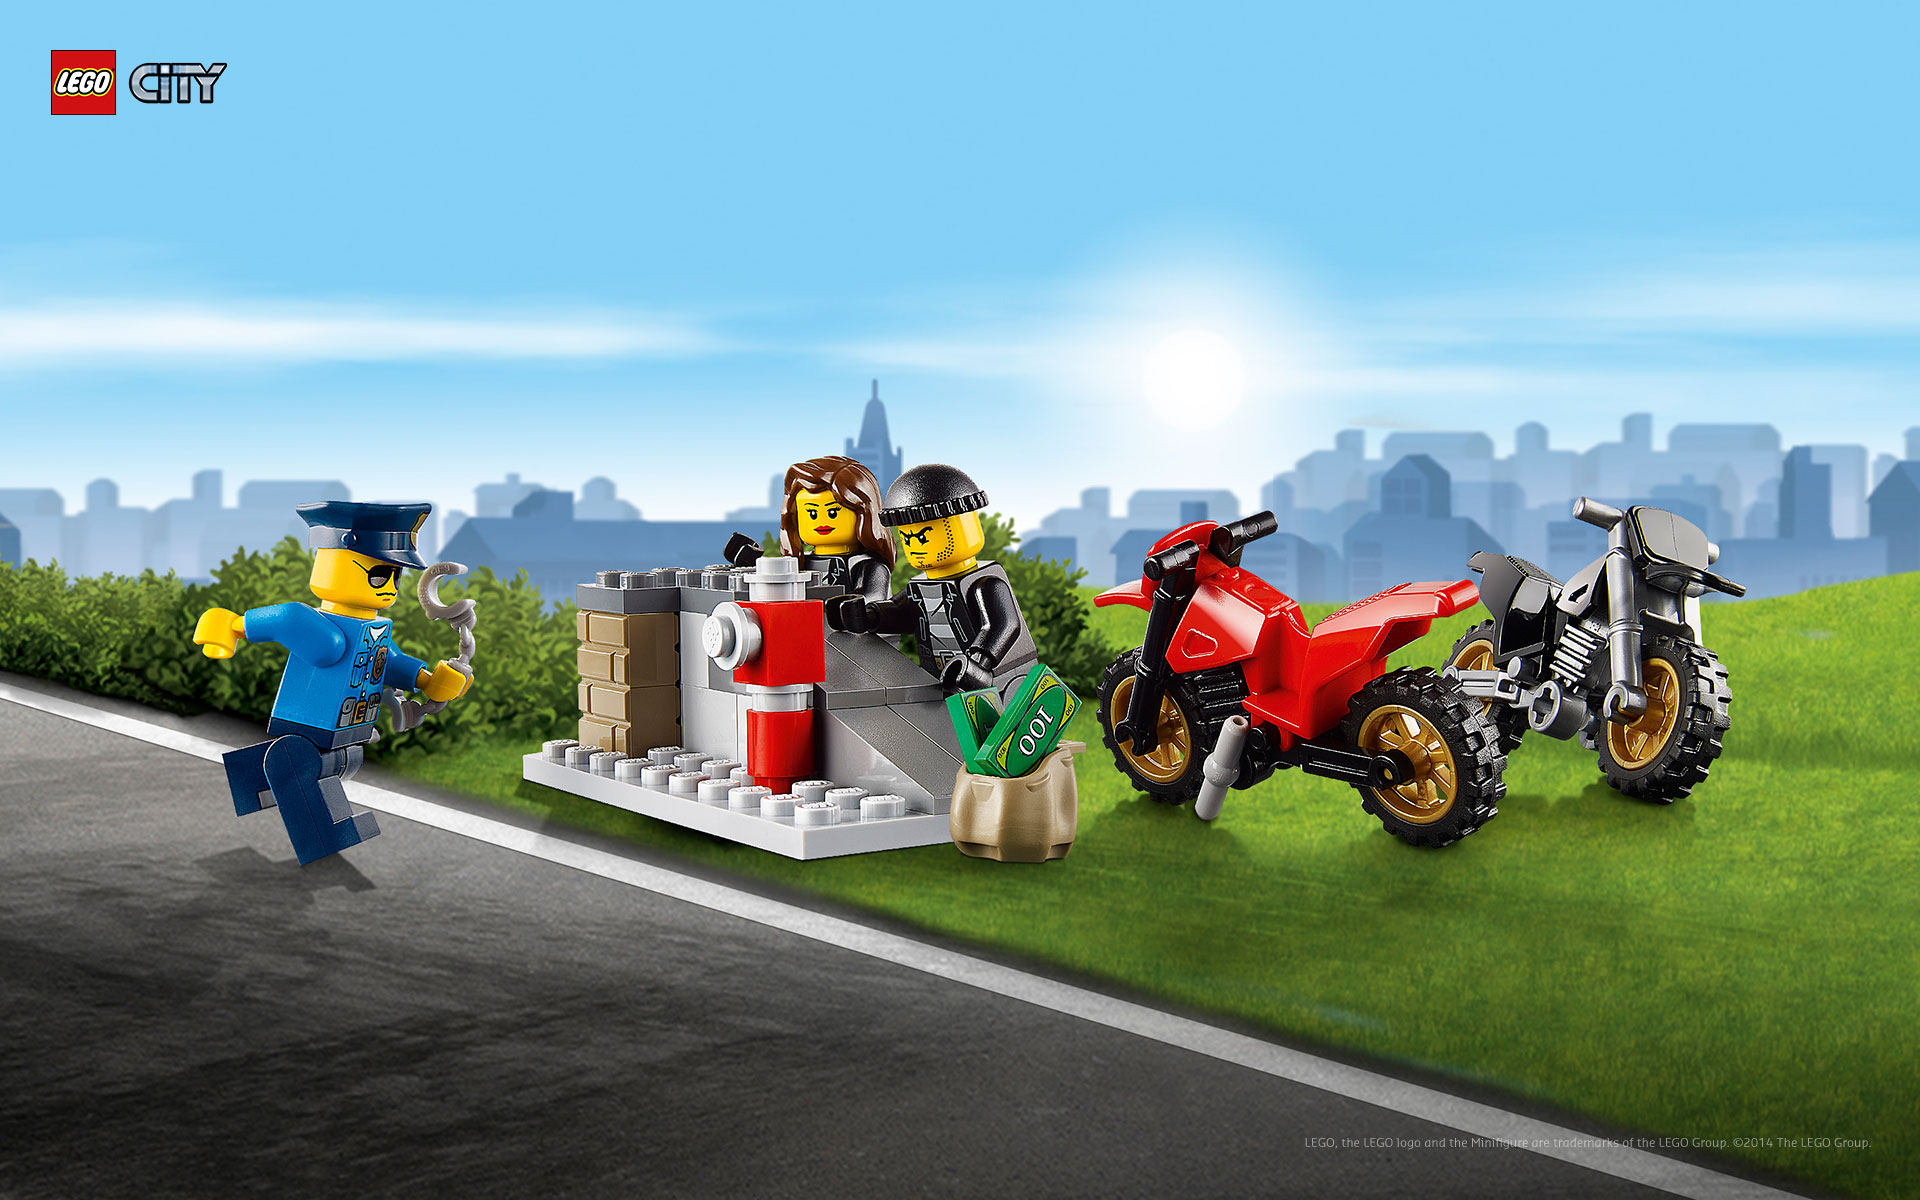 Airplane Wallpaper Iphone X Download Lego Police Wallpaper Gallery